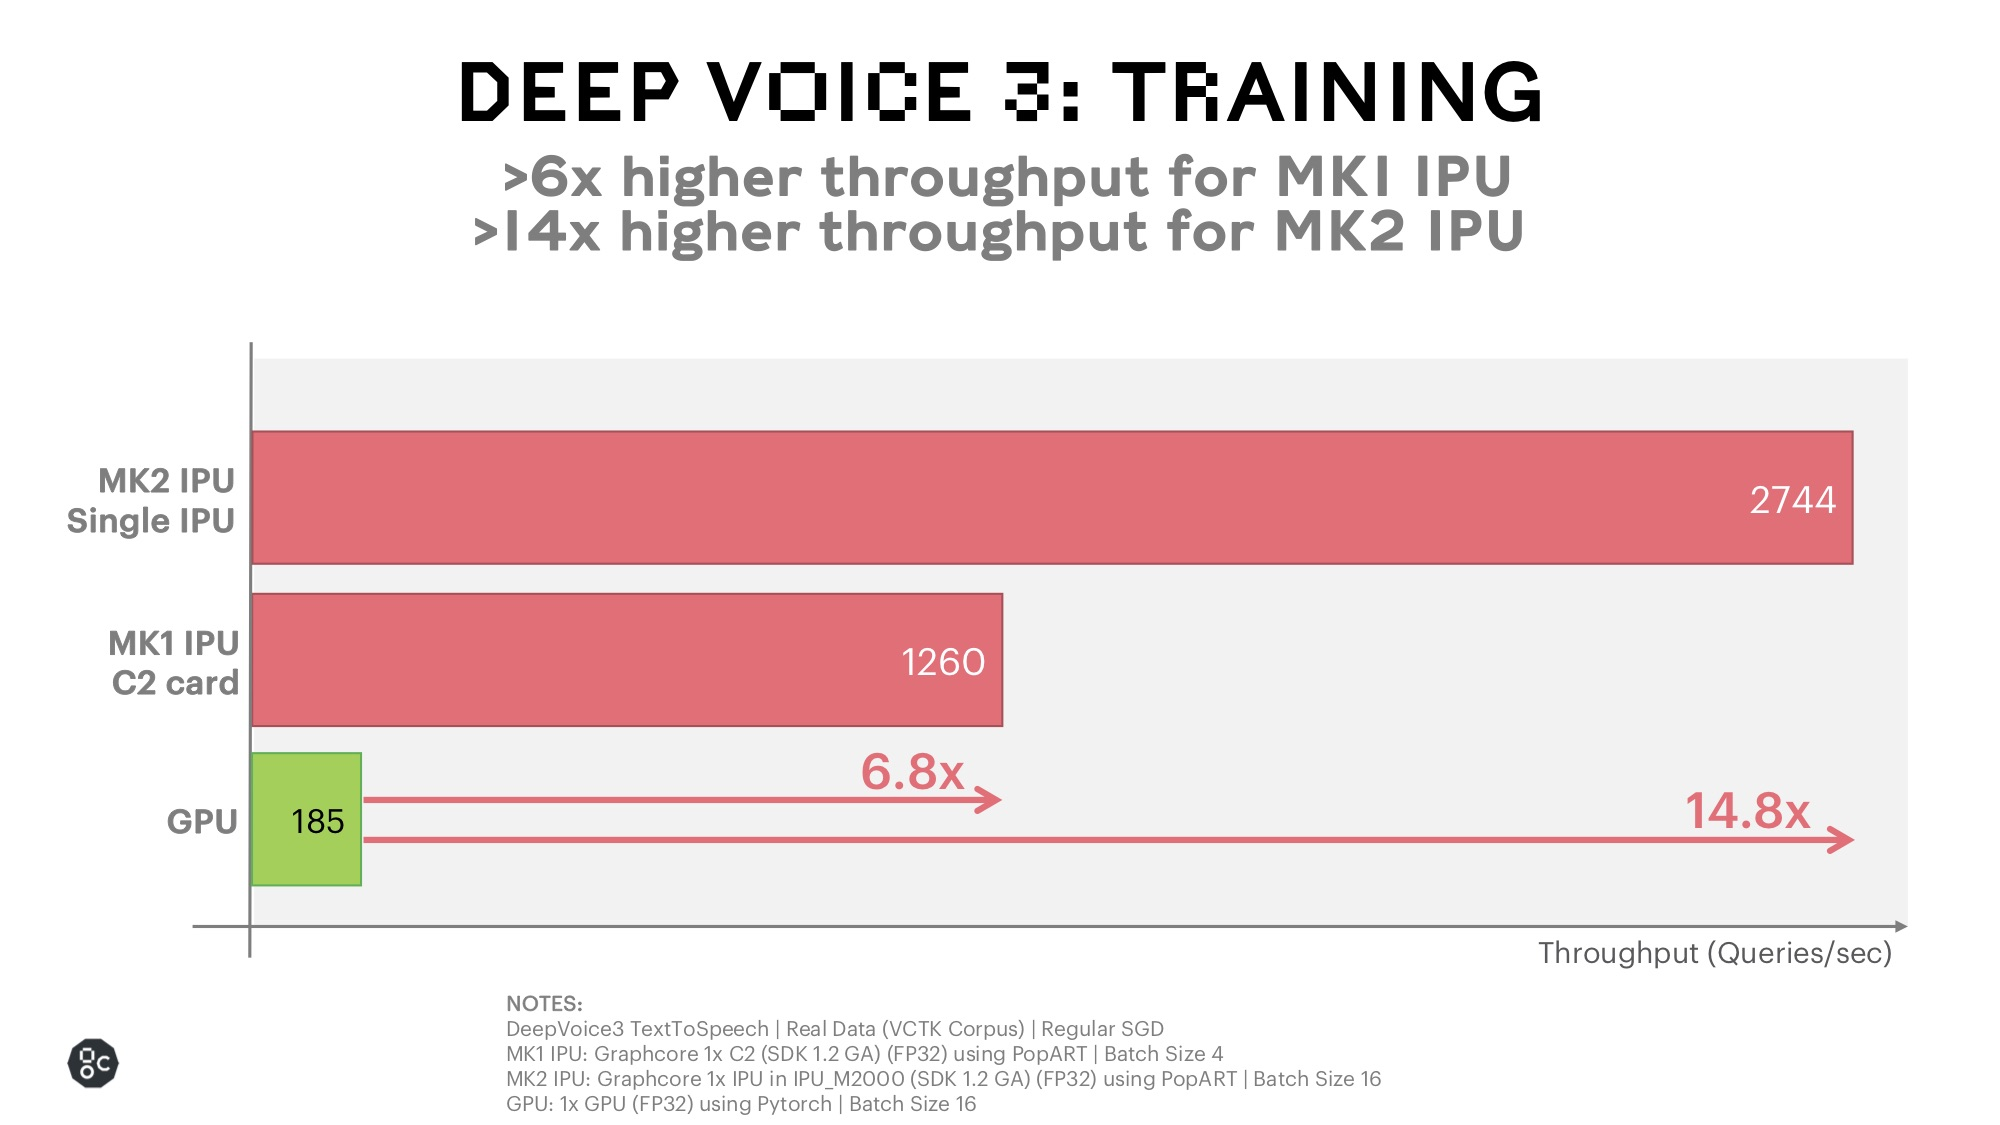 Deep Voice 3 Training on IPU